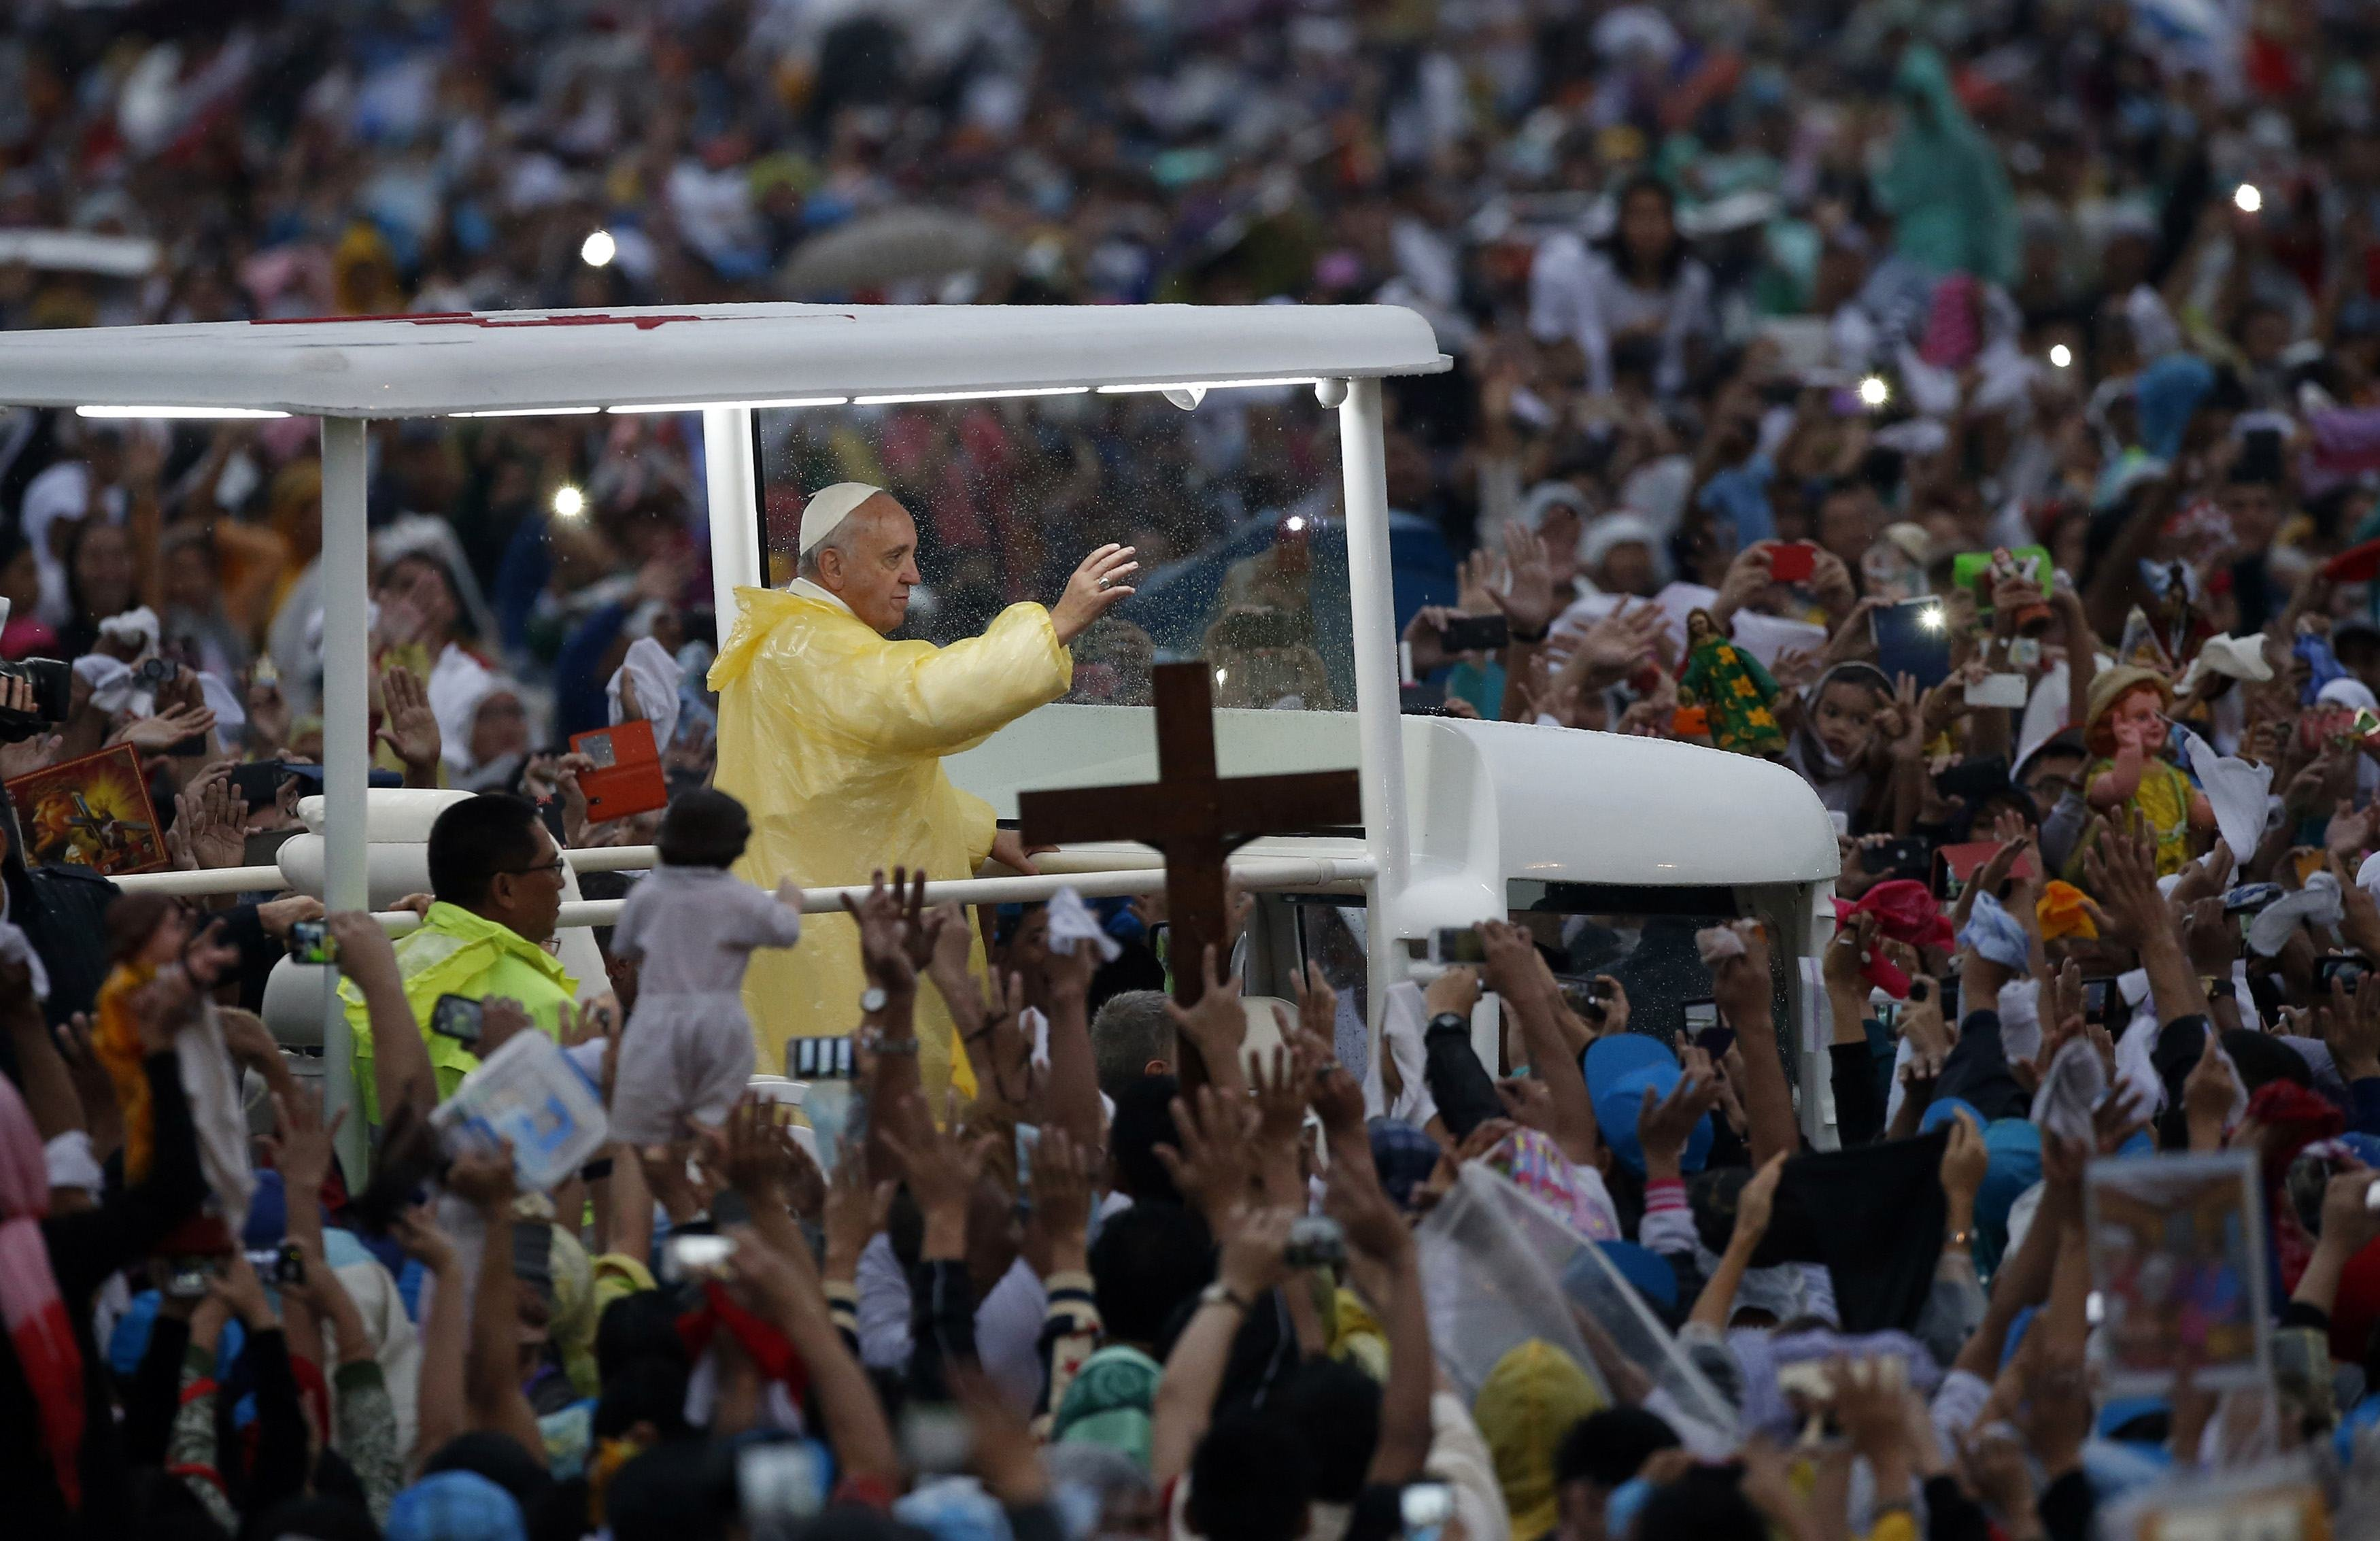 Pope Francis waves from the popemobile after leading a Mass at Rizal Park in Manila on Jan. 18, 2015.